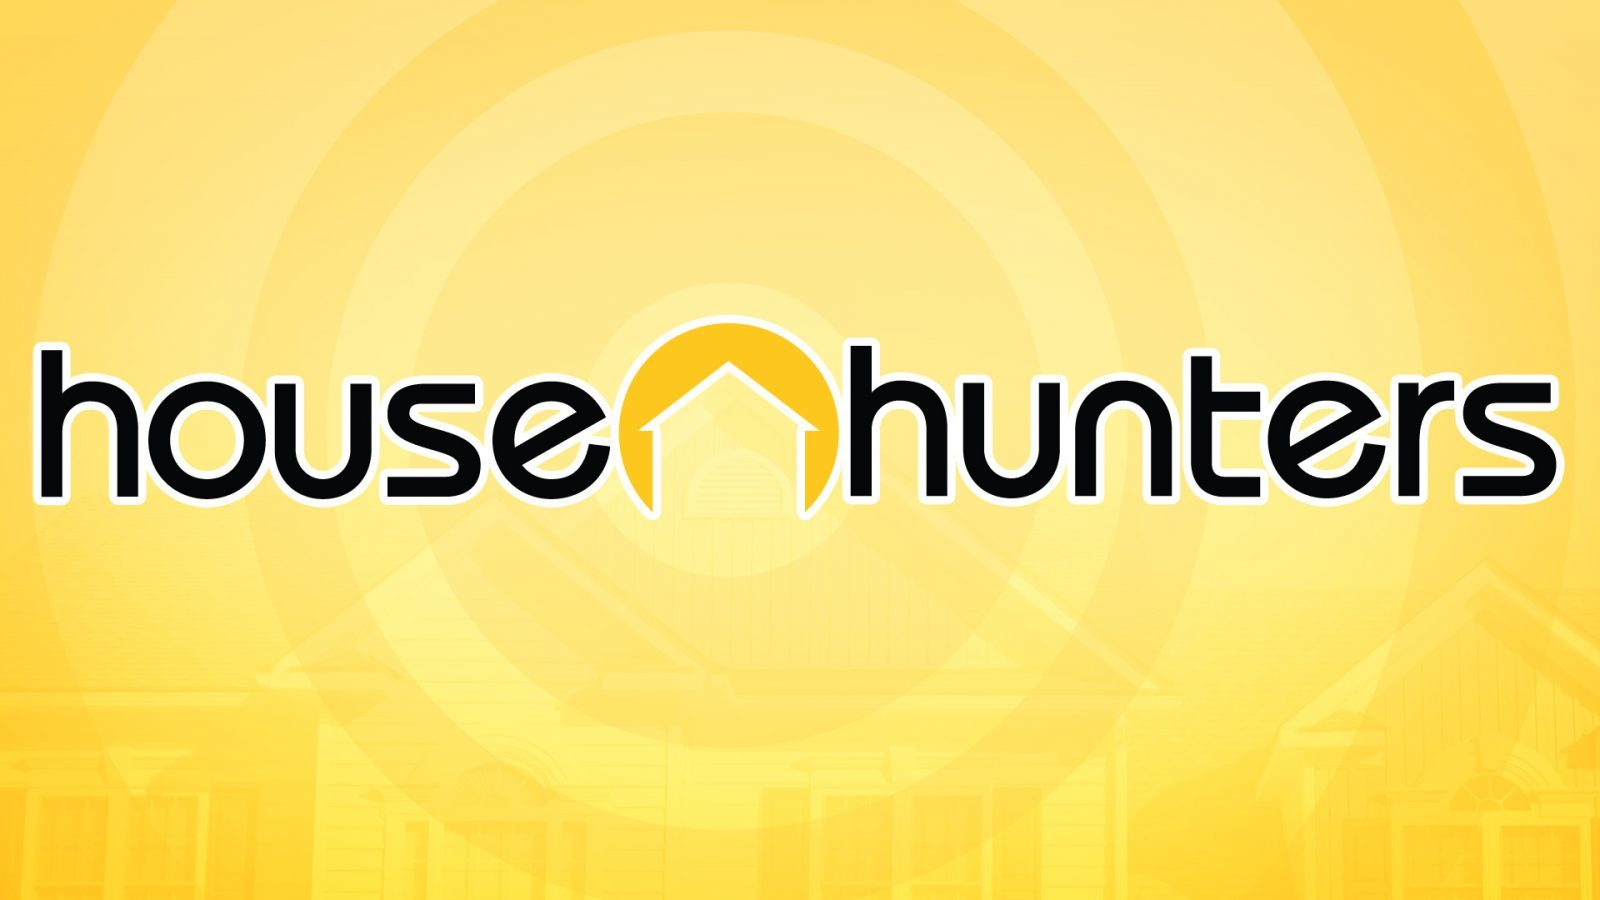 HGTV-showchip-house-hunters